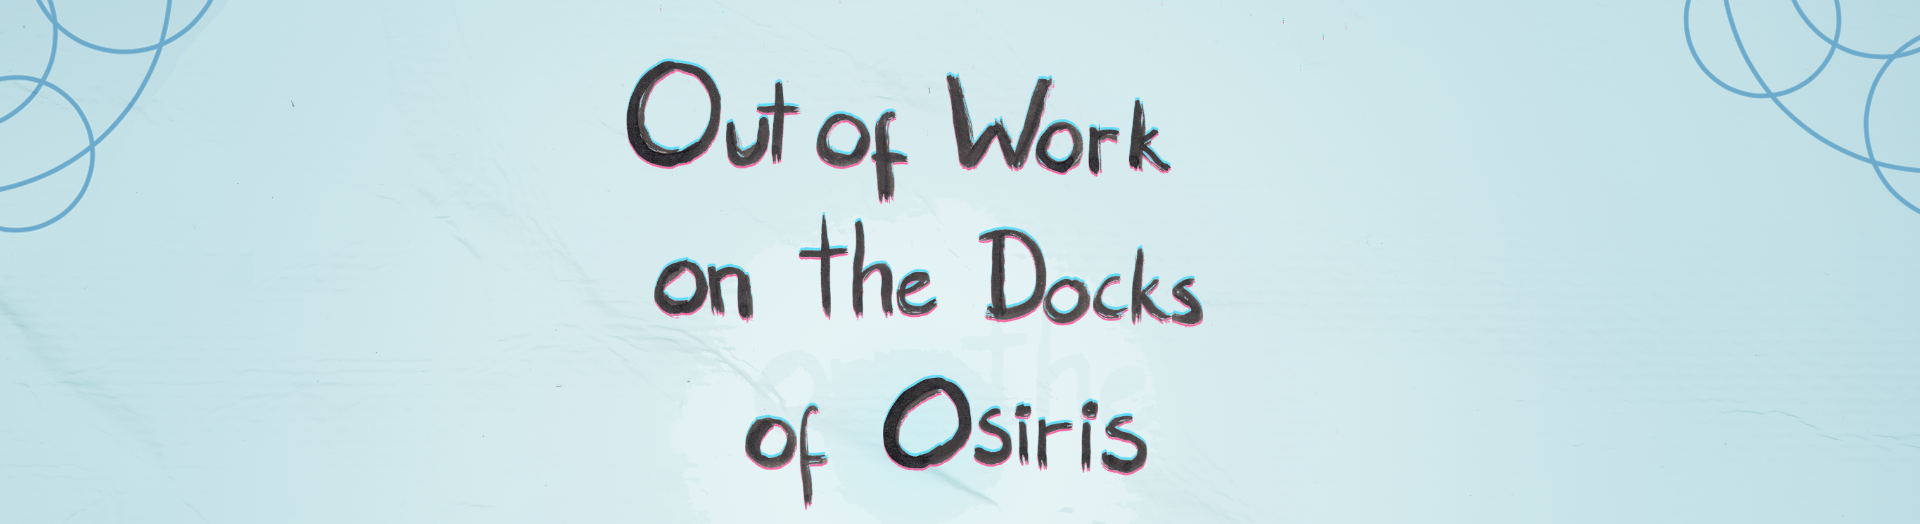 Out of Work on the Docks of Osiris